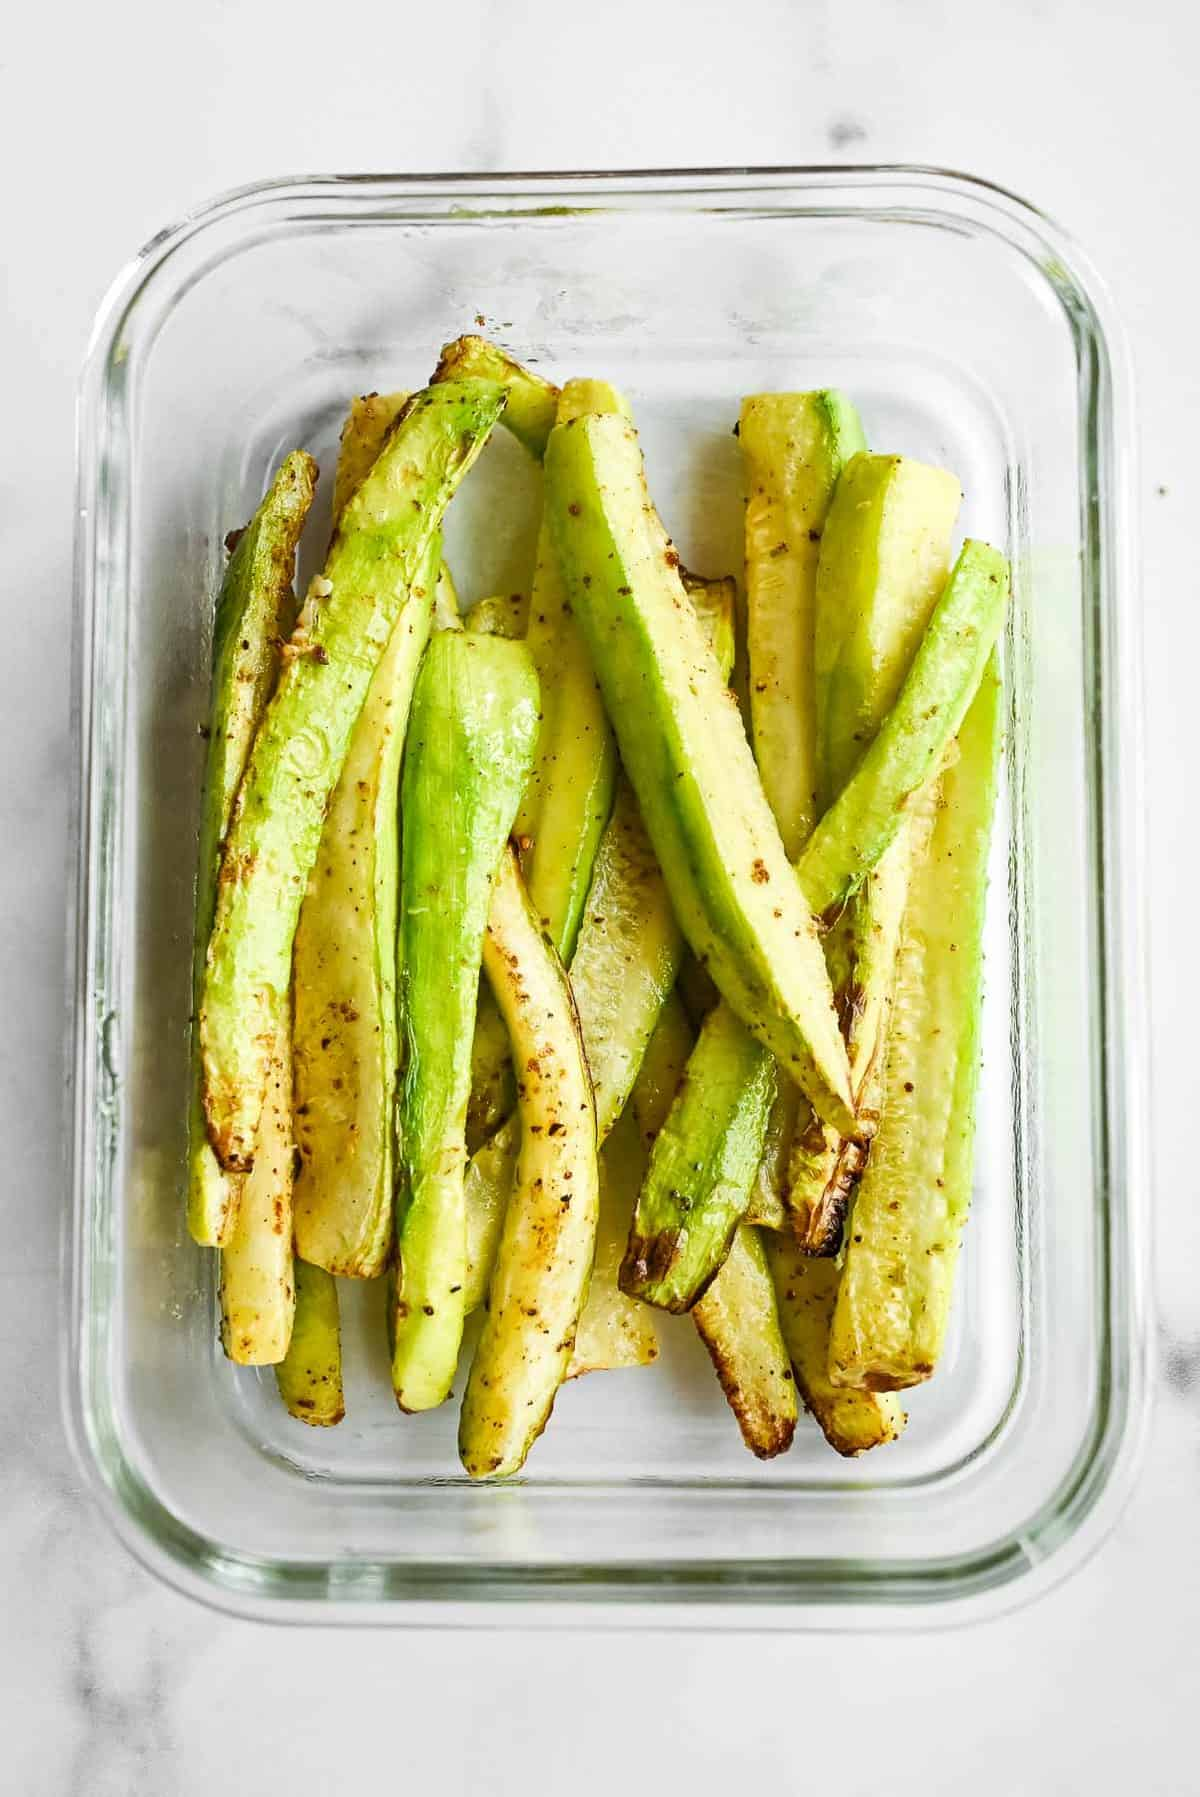 dish of air fried zucchini fries with no breading